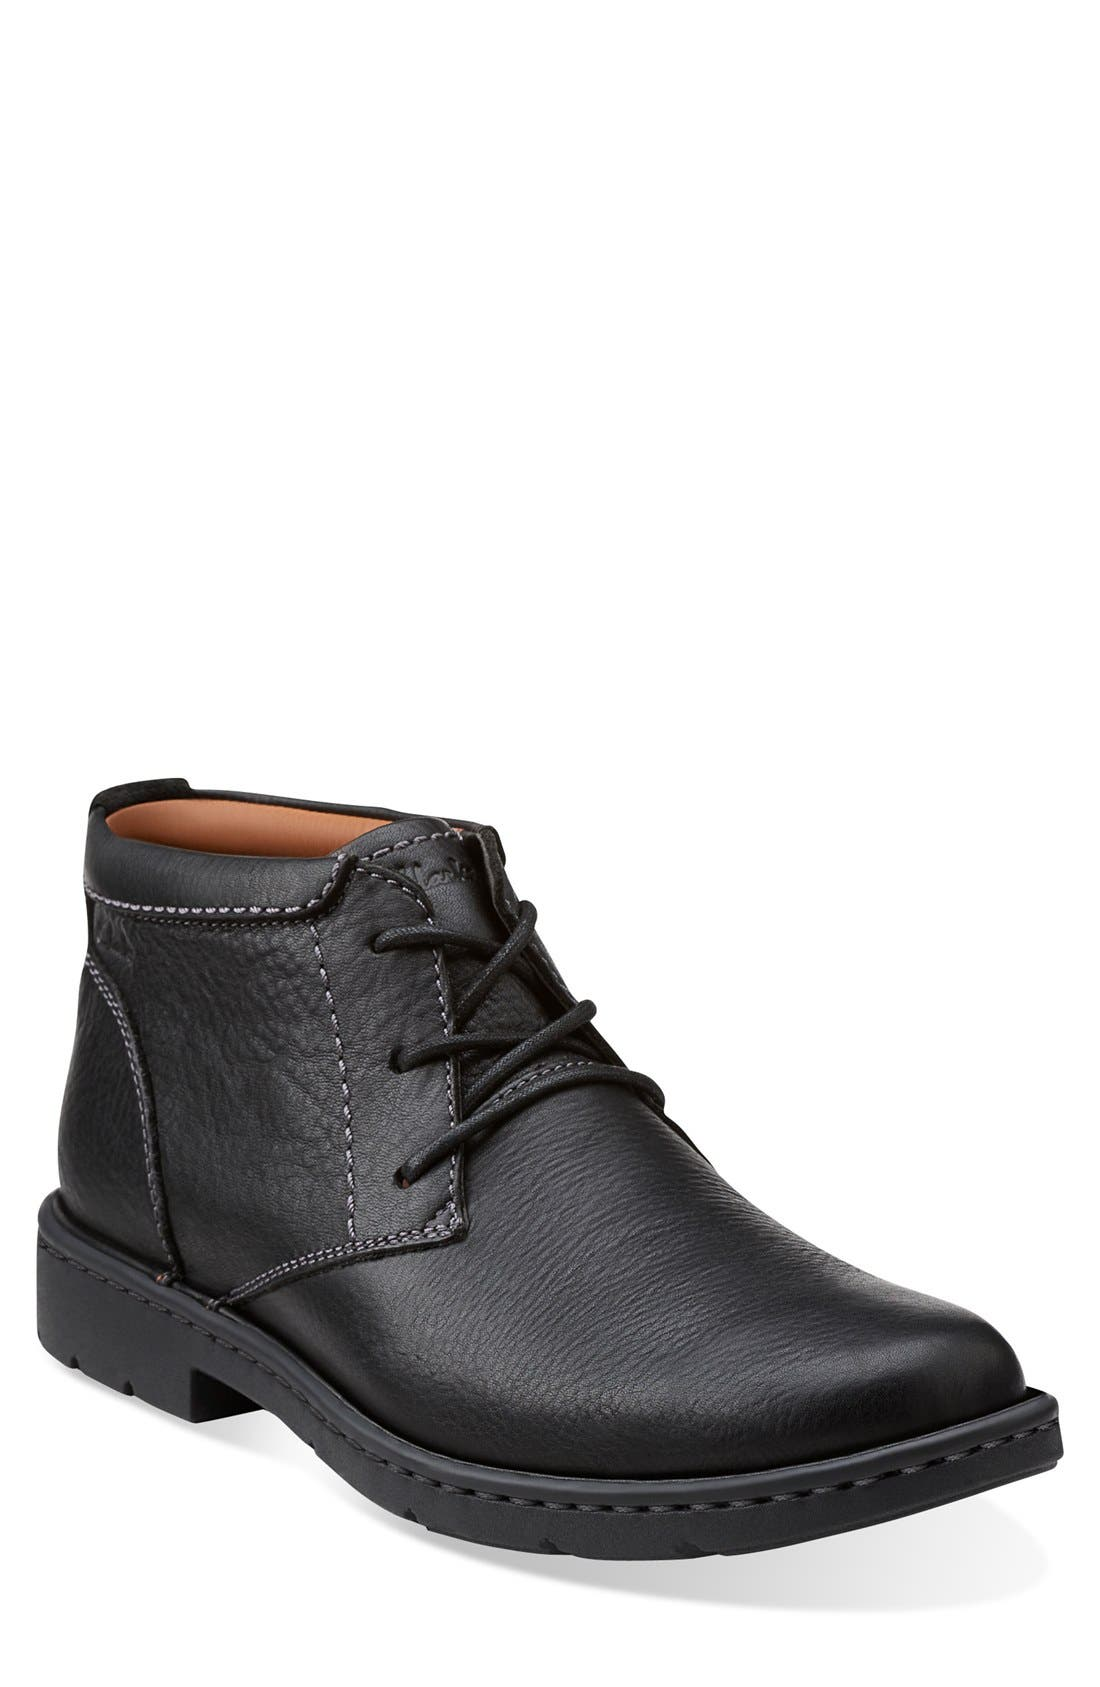 'Stratton - Limit' Plain Toe Boot,                             Main thumbnail 1, color,                             001